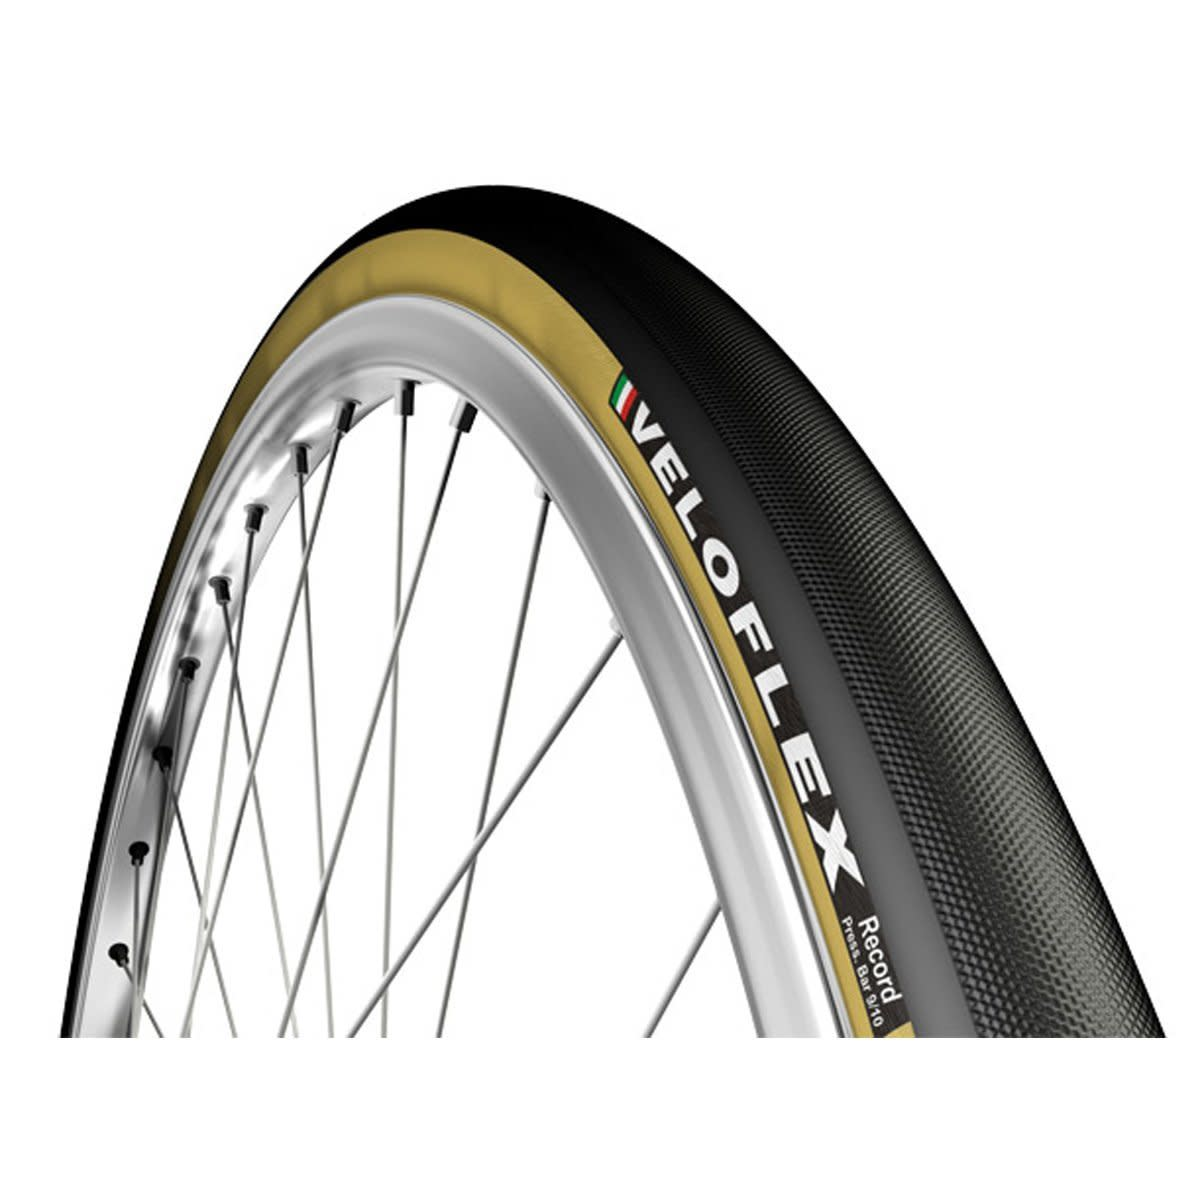 The Veloflex Record offers track riders a heady combination of speed and impeccable handling on the boards